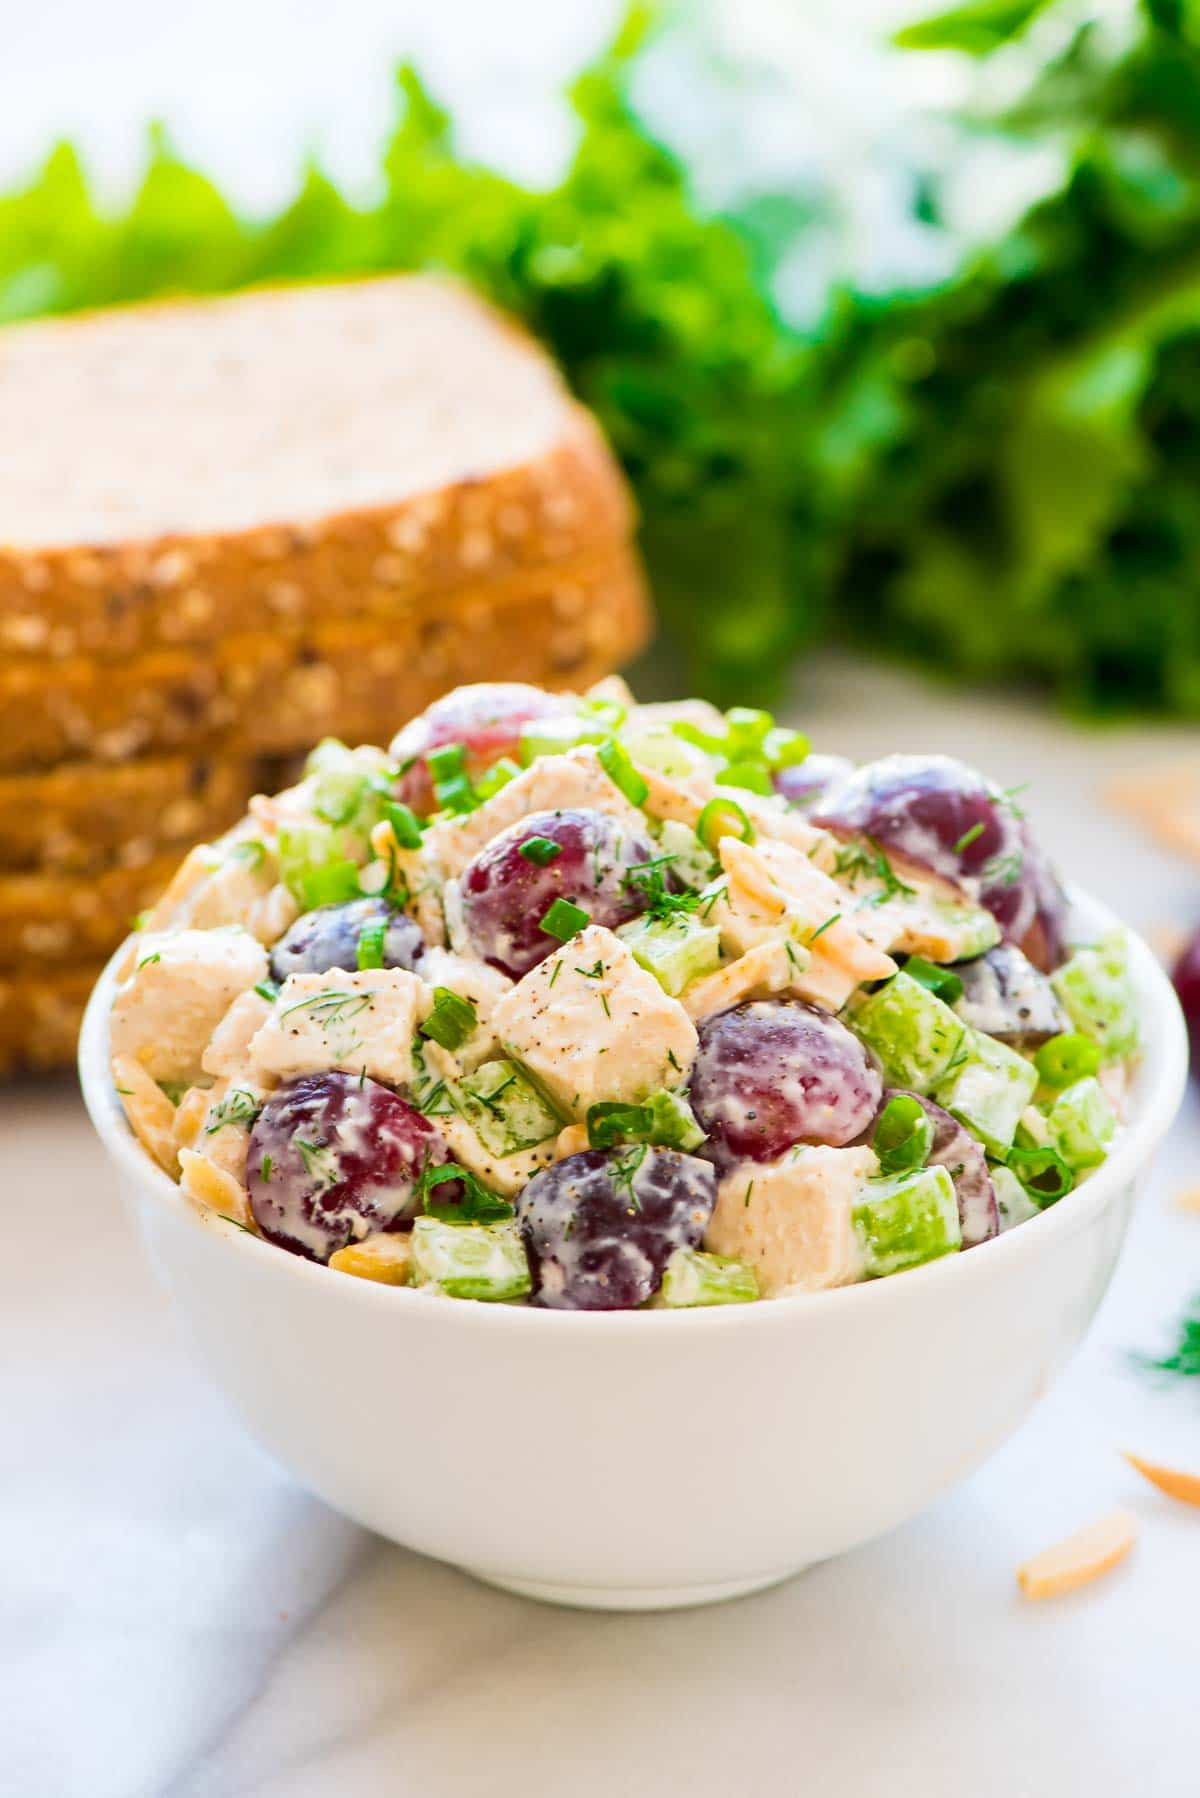 Greek yogurt chicken salad with dill easy and healthy healthy greek yogurt chicken salad with grapes celery and fresh dill perfect for forumfinder Choice Image